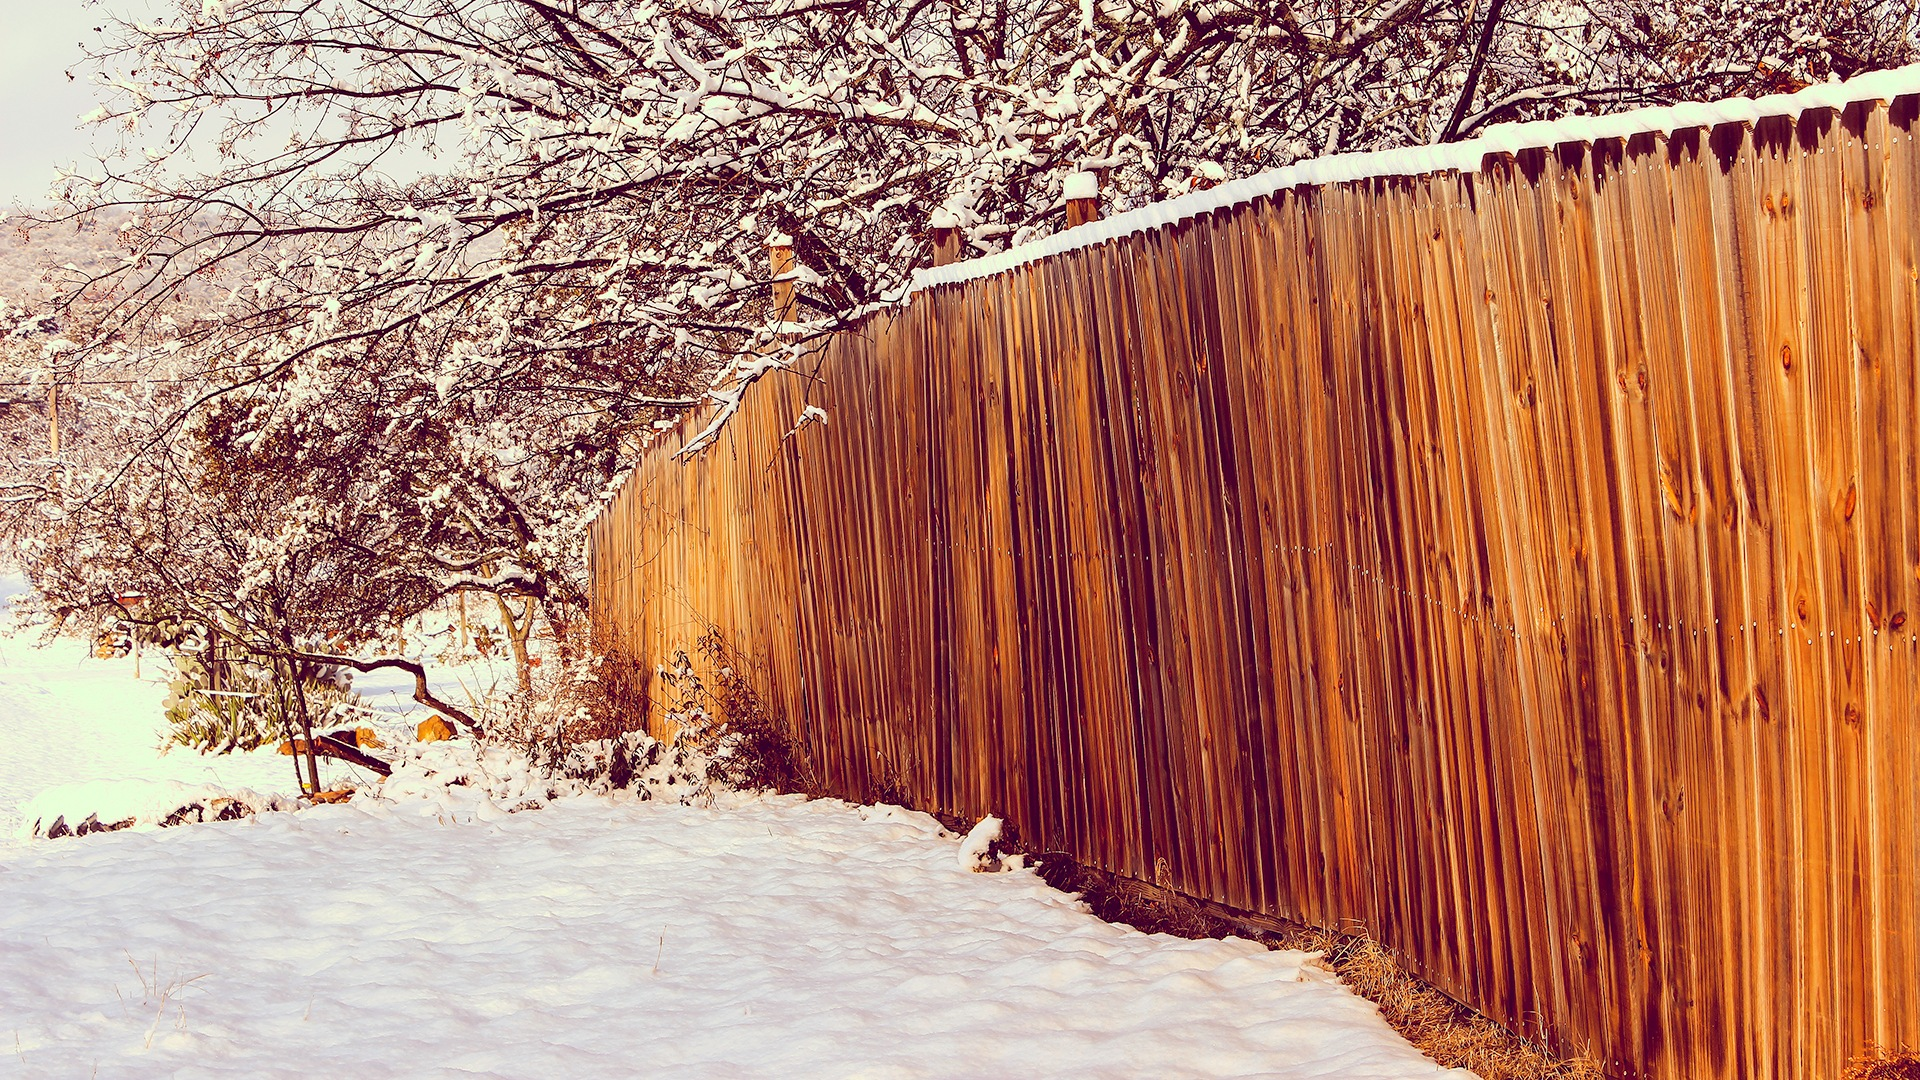 Wooden Fence in Snow by Lane L Gibson